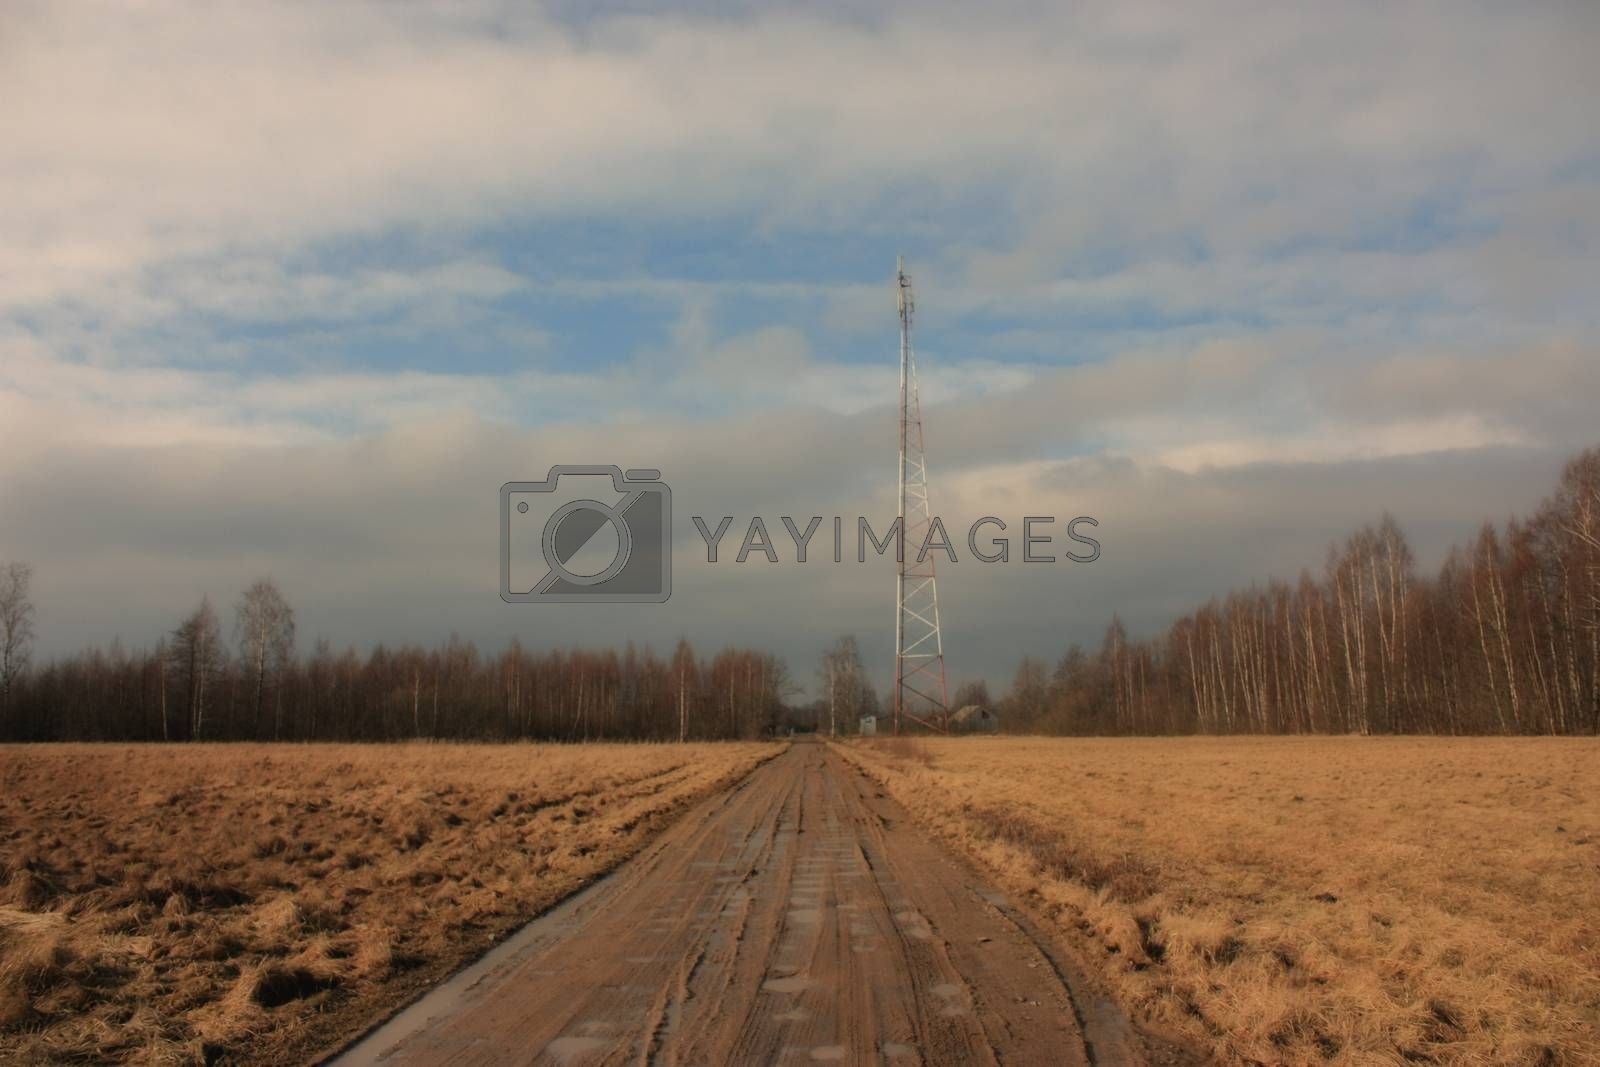 view of the communications tower and road to the forest, against a blue sky with white clouds